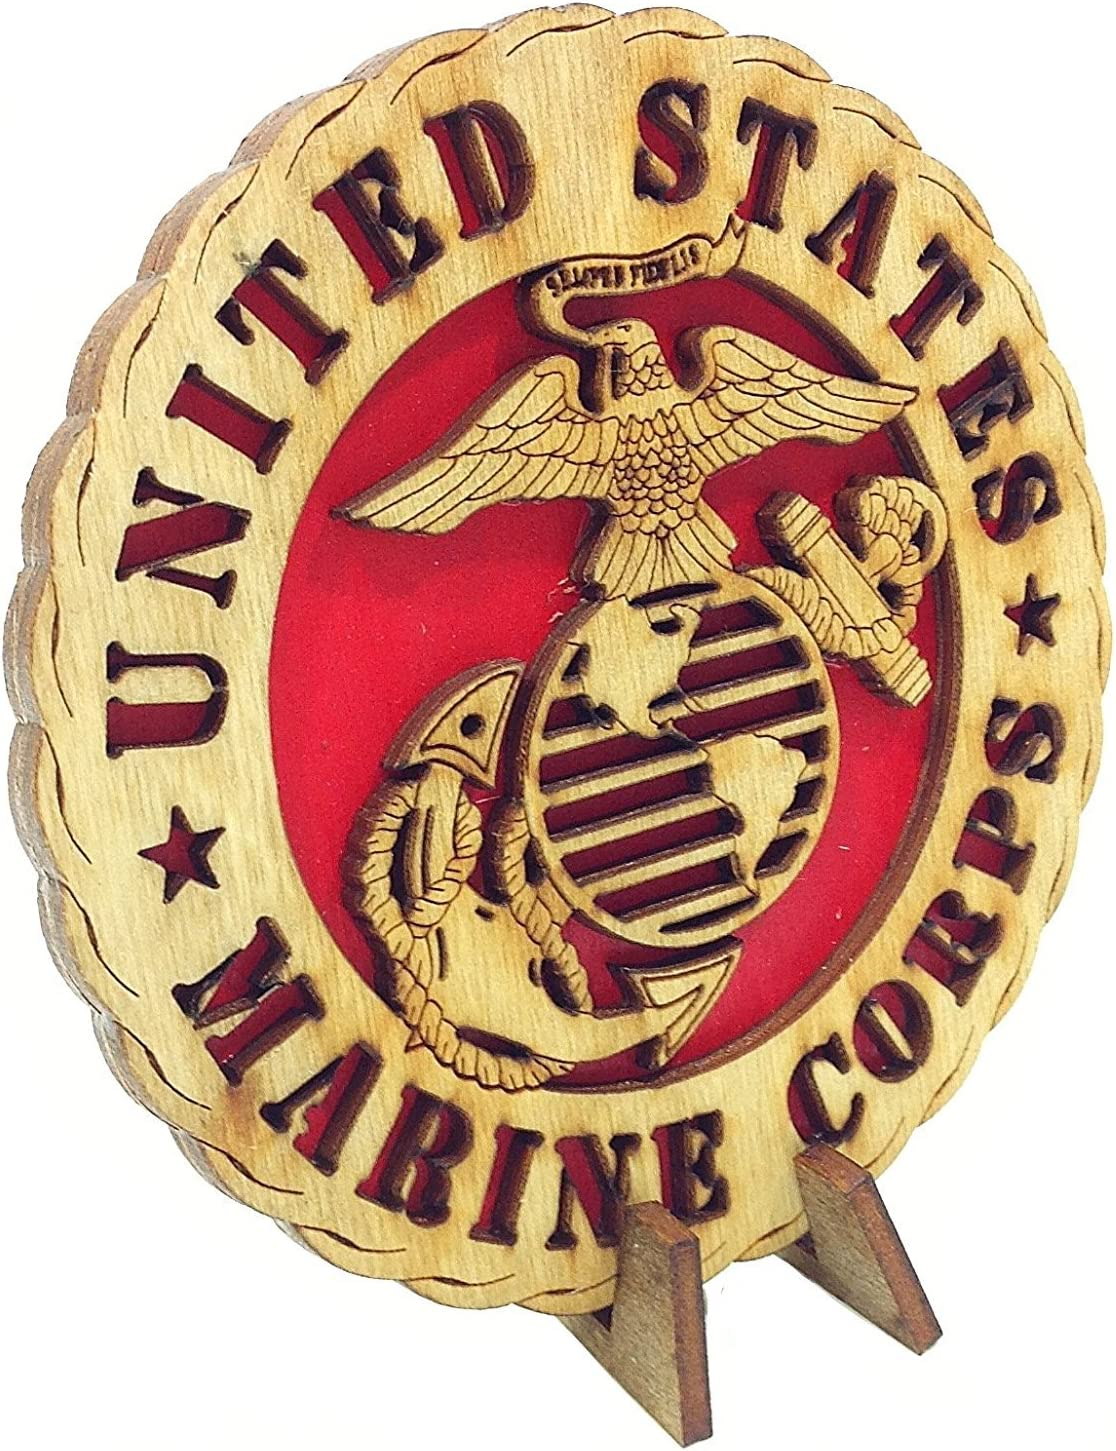 Armed Forces Marines Military Decorative Laser Three Dimensional Wooden Desk Plaque 4